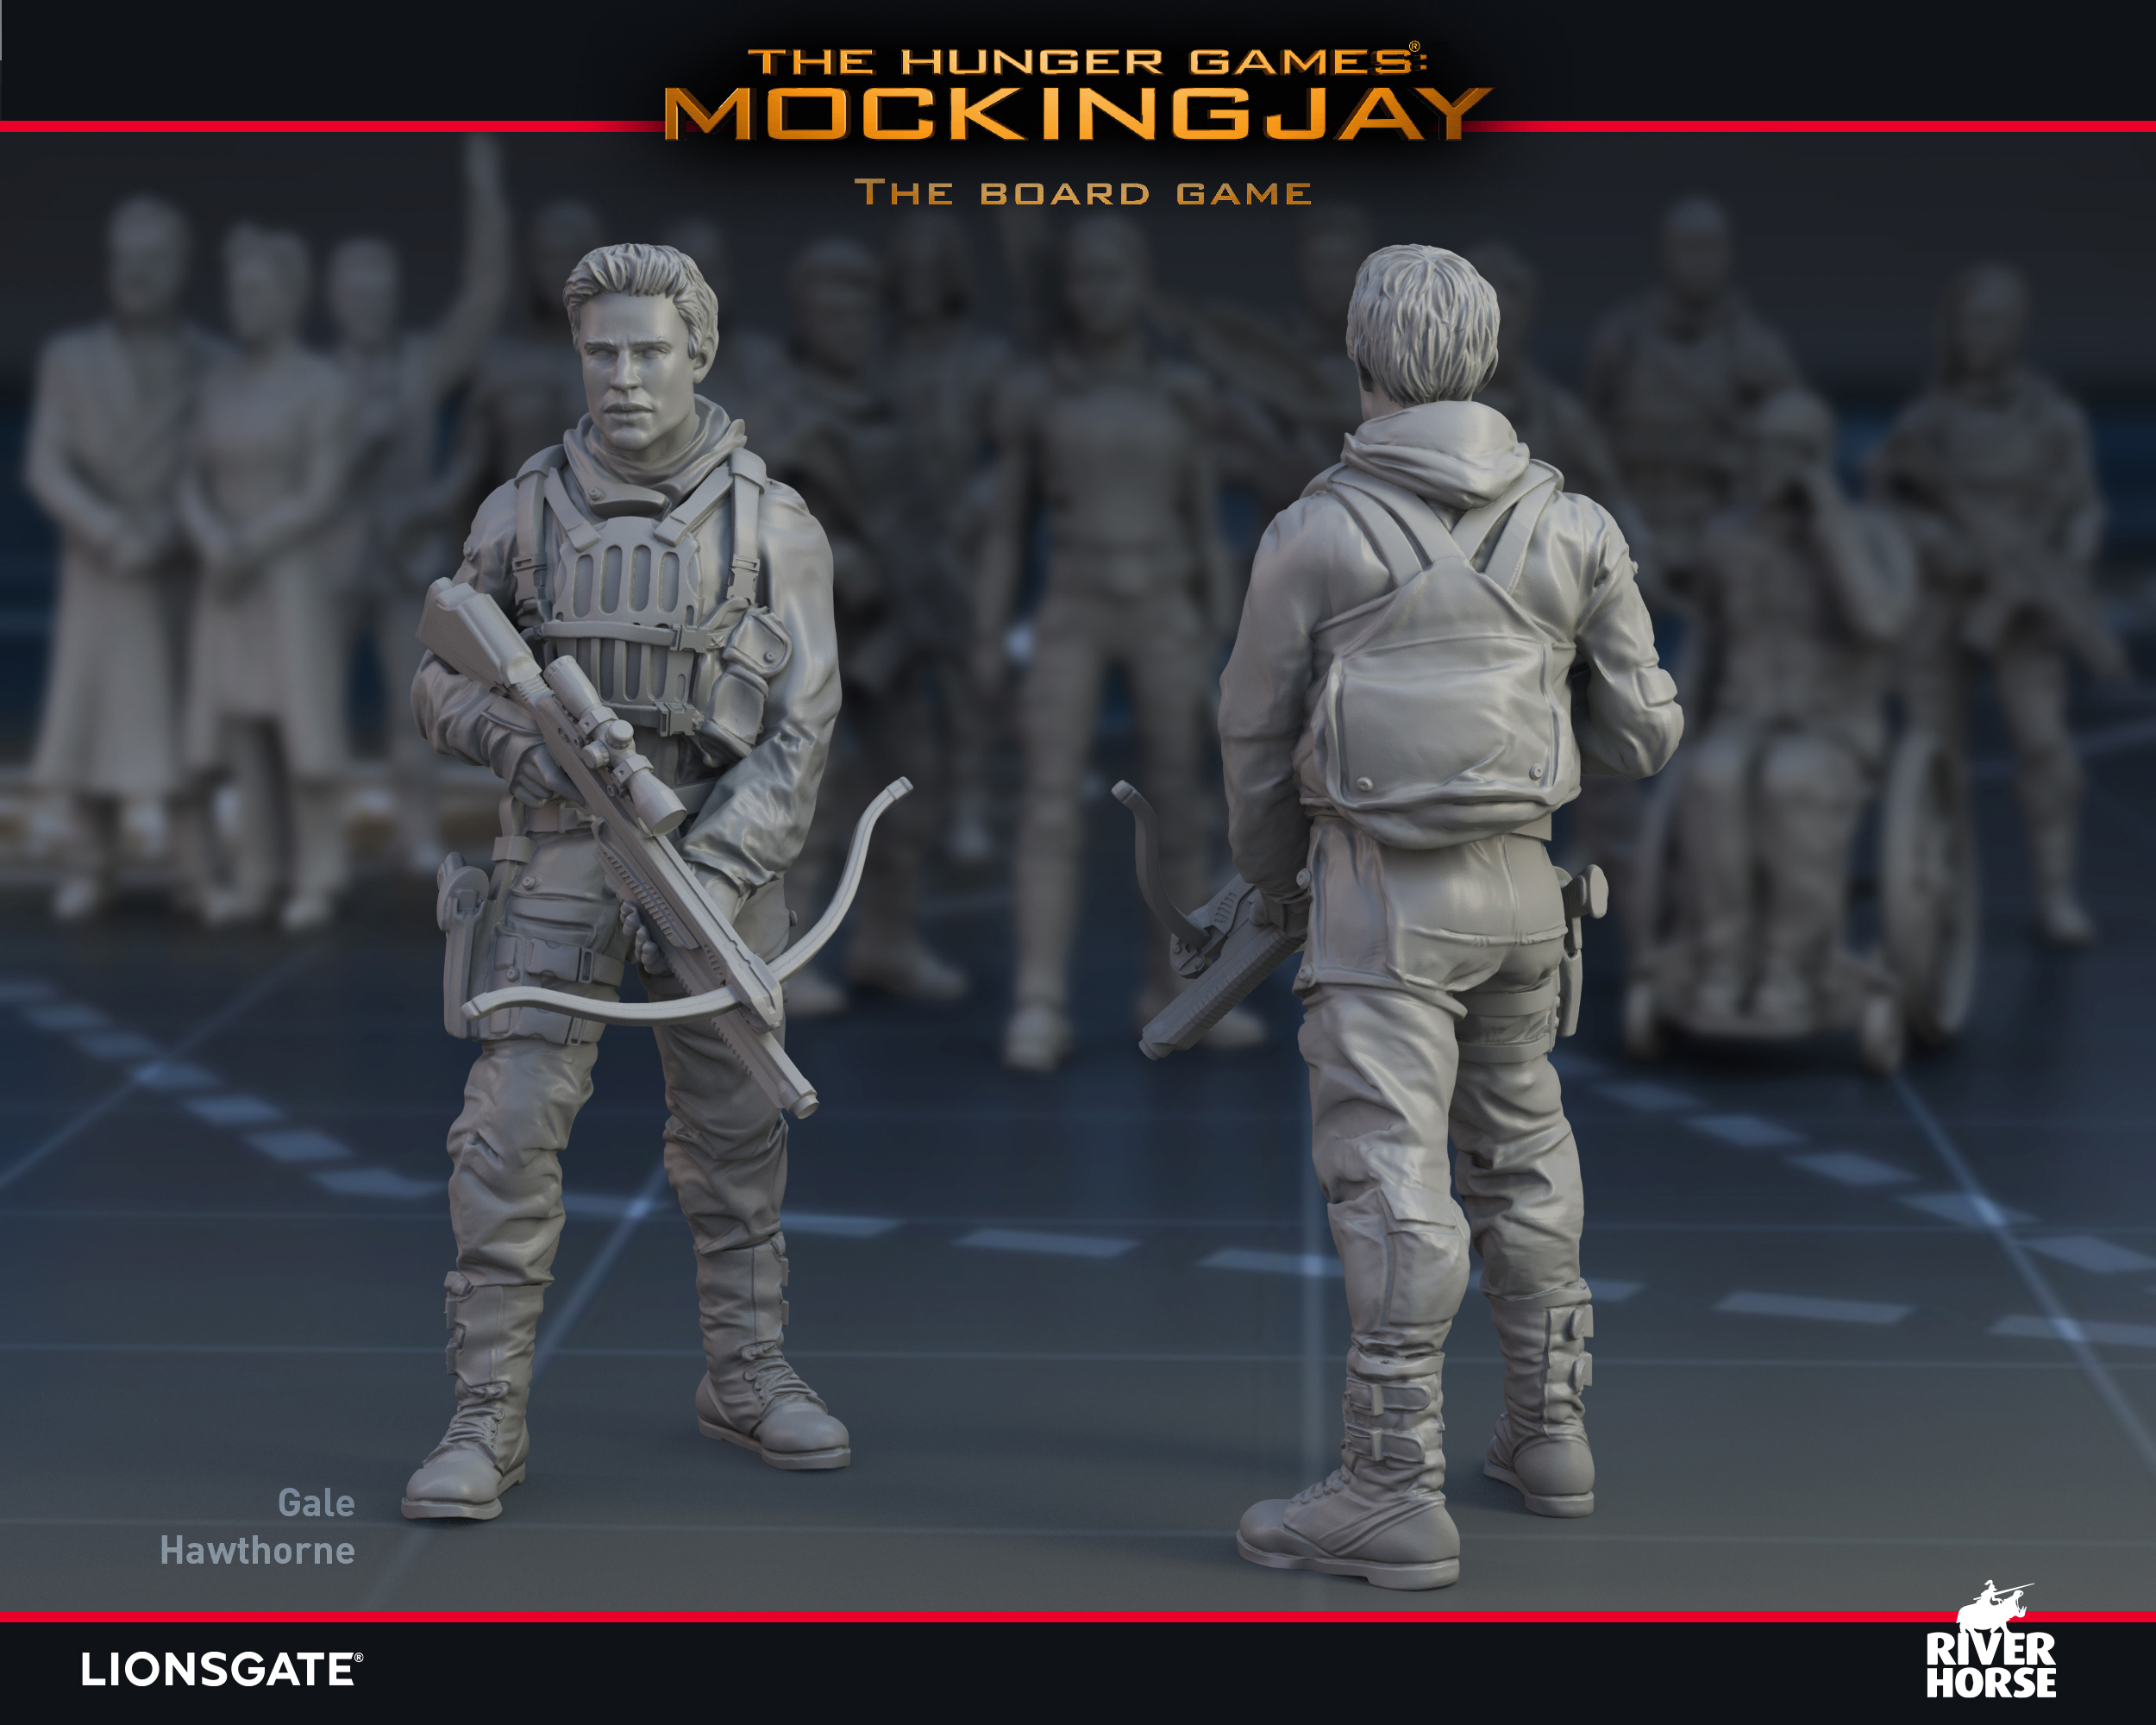 Render of Gale Hawthorne for The Hunger Games: Mockingjay - The Board Game by River Horse